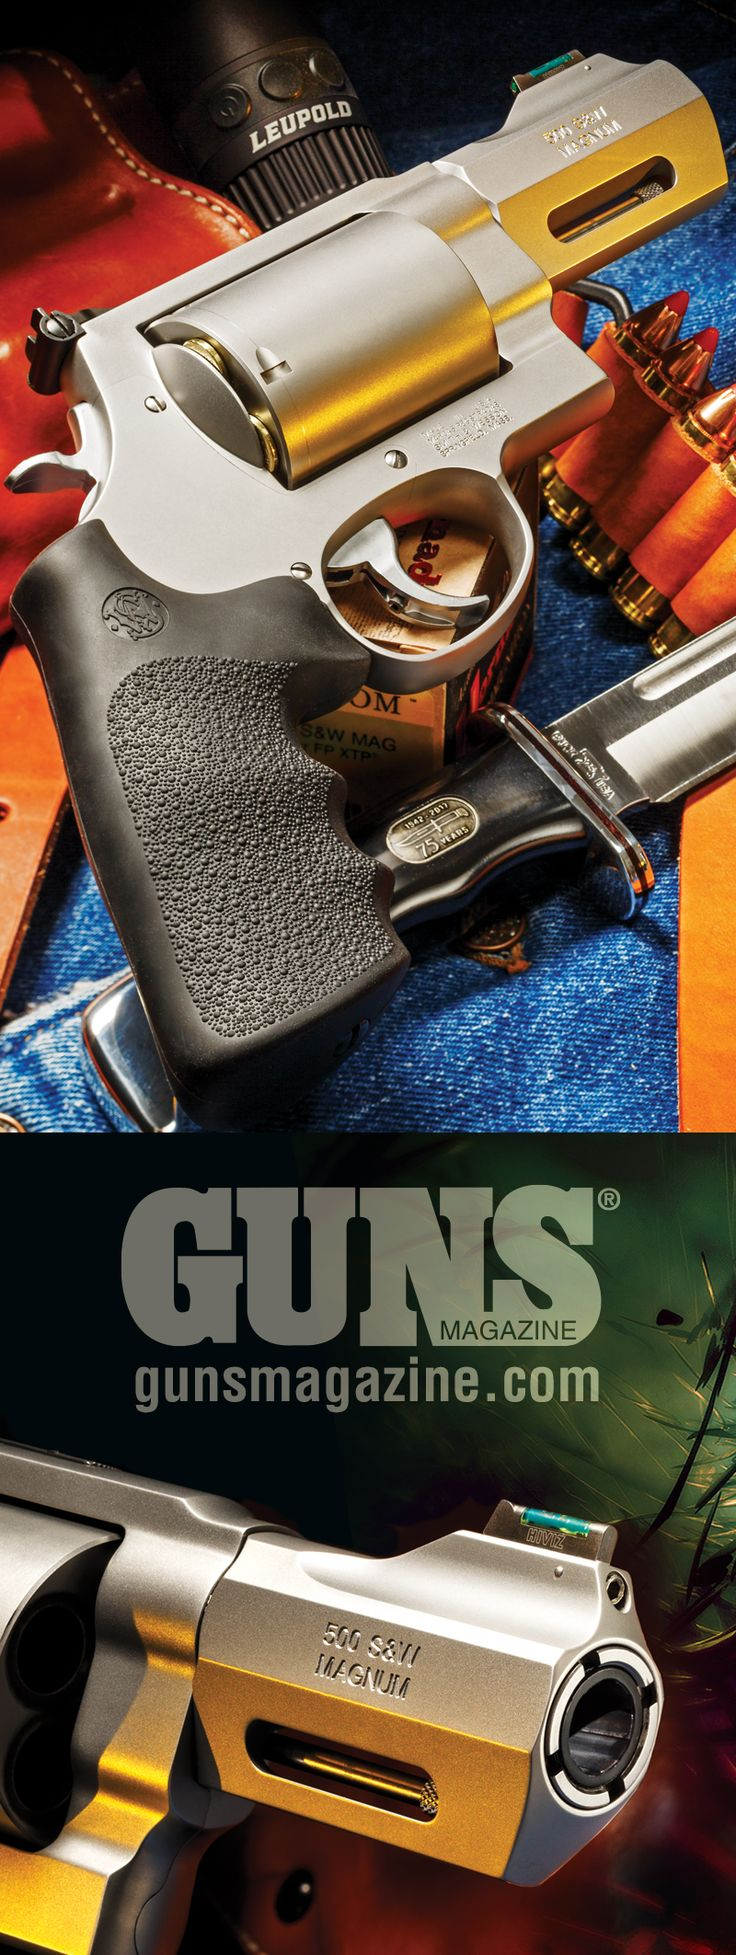 Big Bad Belly Gun   By Mark Hampton   Smith & Wesson Redefines CCW With The X-Frame .500 S&W For Defense Against, Well … Anything  At first glance, the .500 S&W Magnum appears to be a huge revolver cartridge—and it is compared to the popular .44 Mag and lesser rounds. The S&W 500 revolver based on the company's massive X-Frame model is an impressive looking beast.   © GUNS Magazine 2017